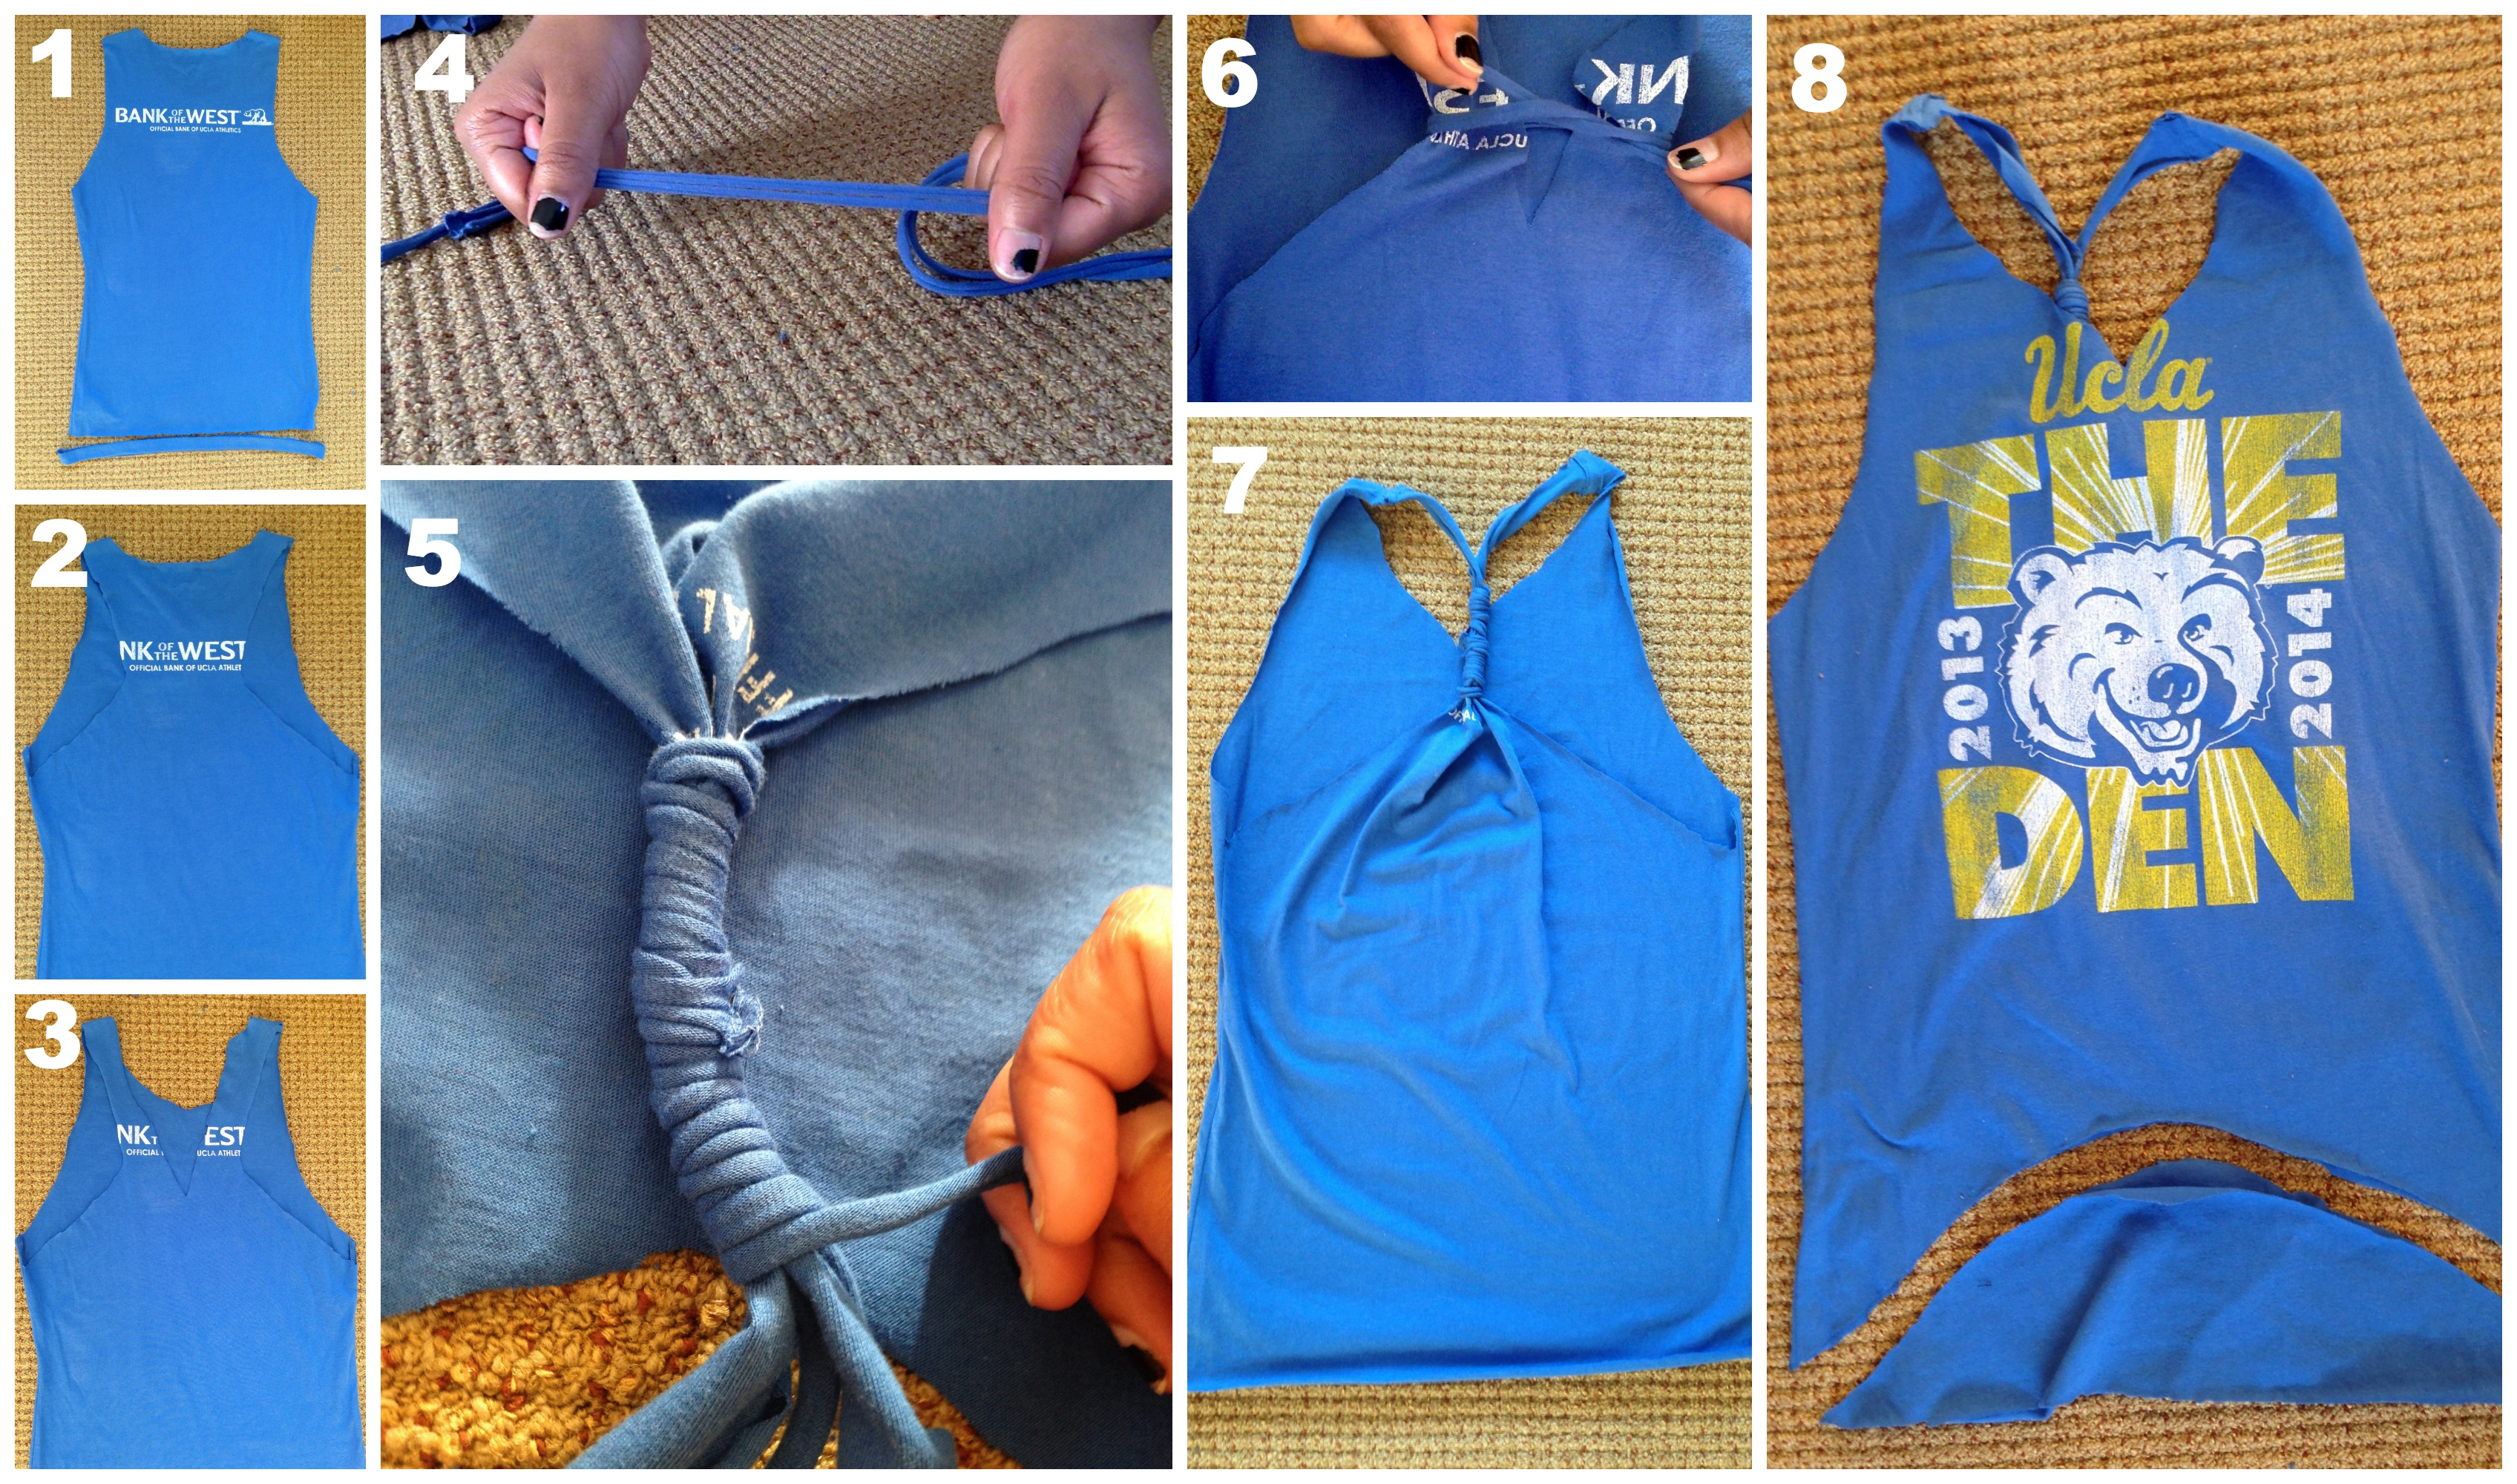 d823333ea Follow steps 1 and 2 from above to get the shirt into a tank top. Cut off  the bottom hem and save it.